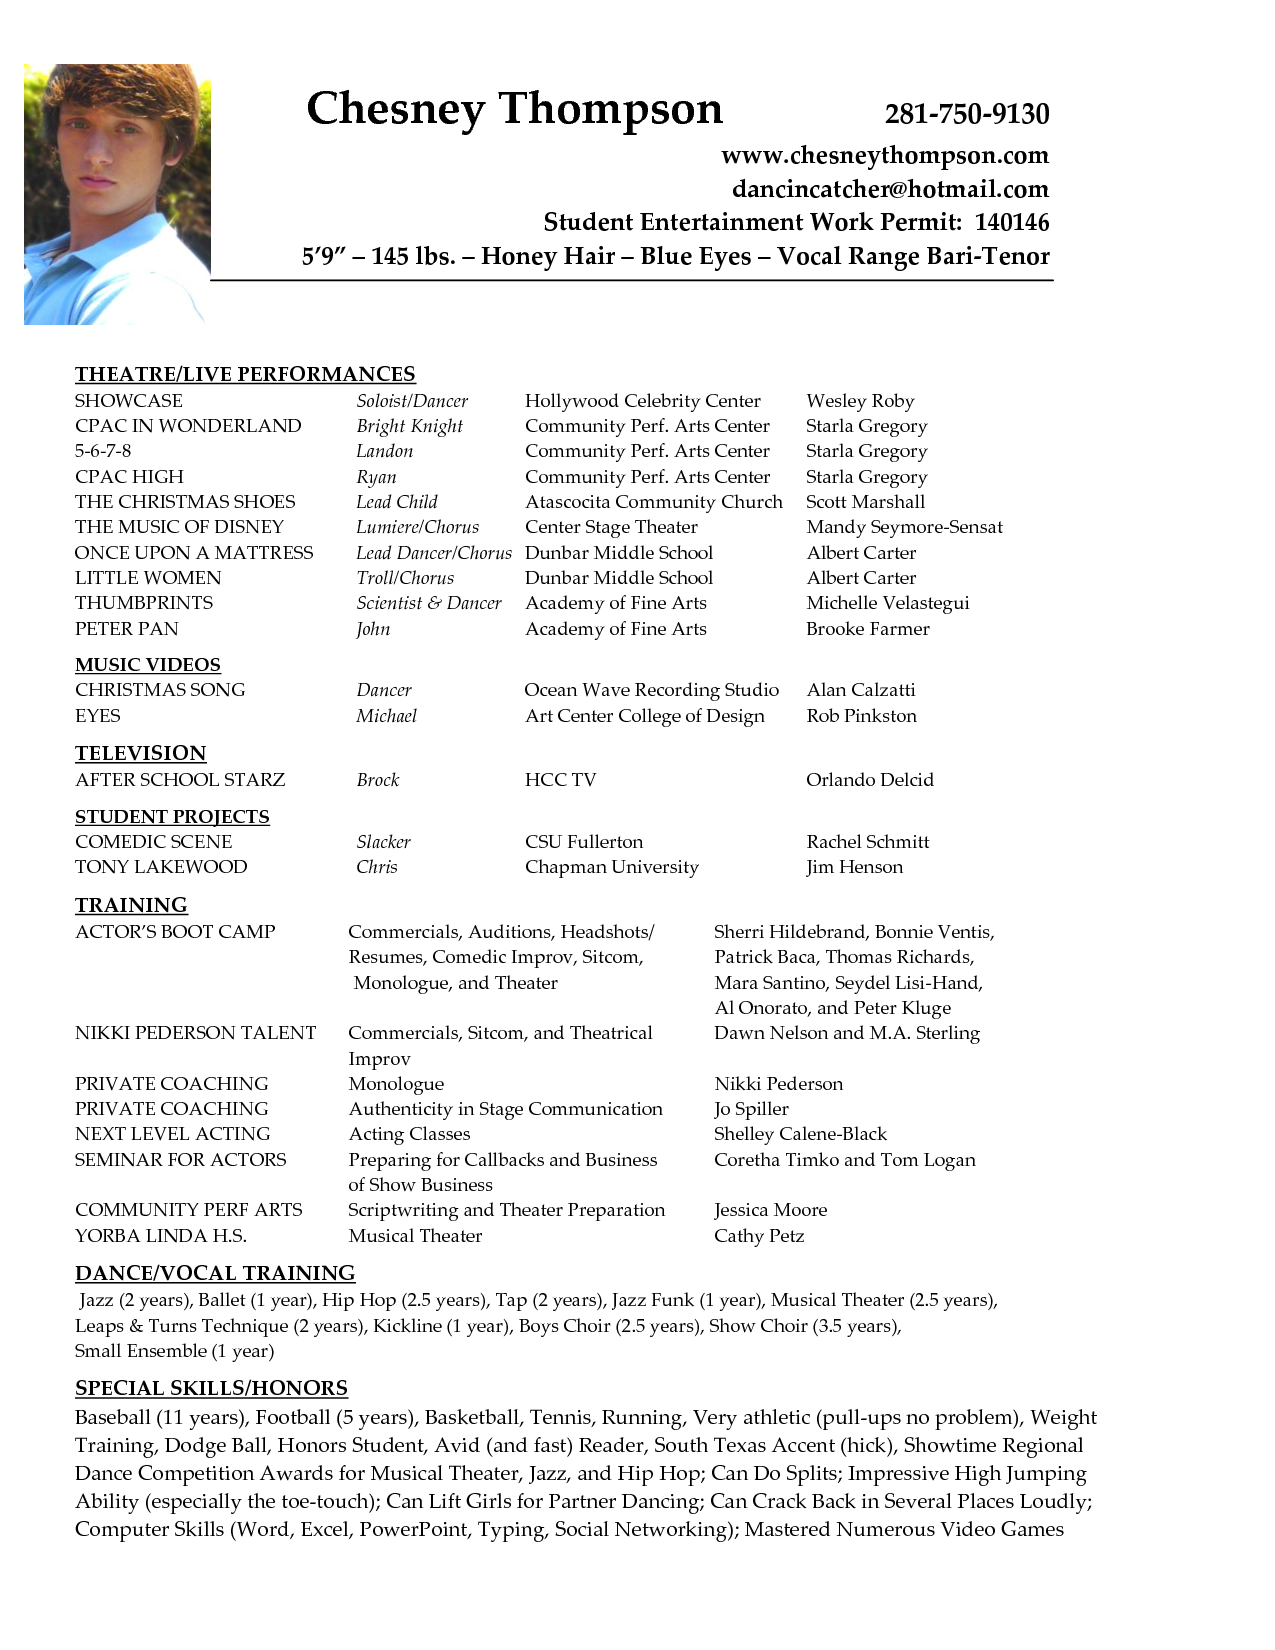 Format For Resumes Theatre Resume Template Builder Dfdqkmt Barb Jones Photography